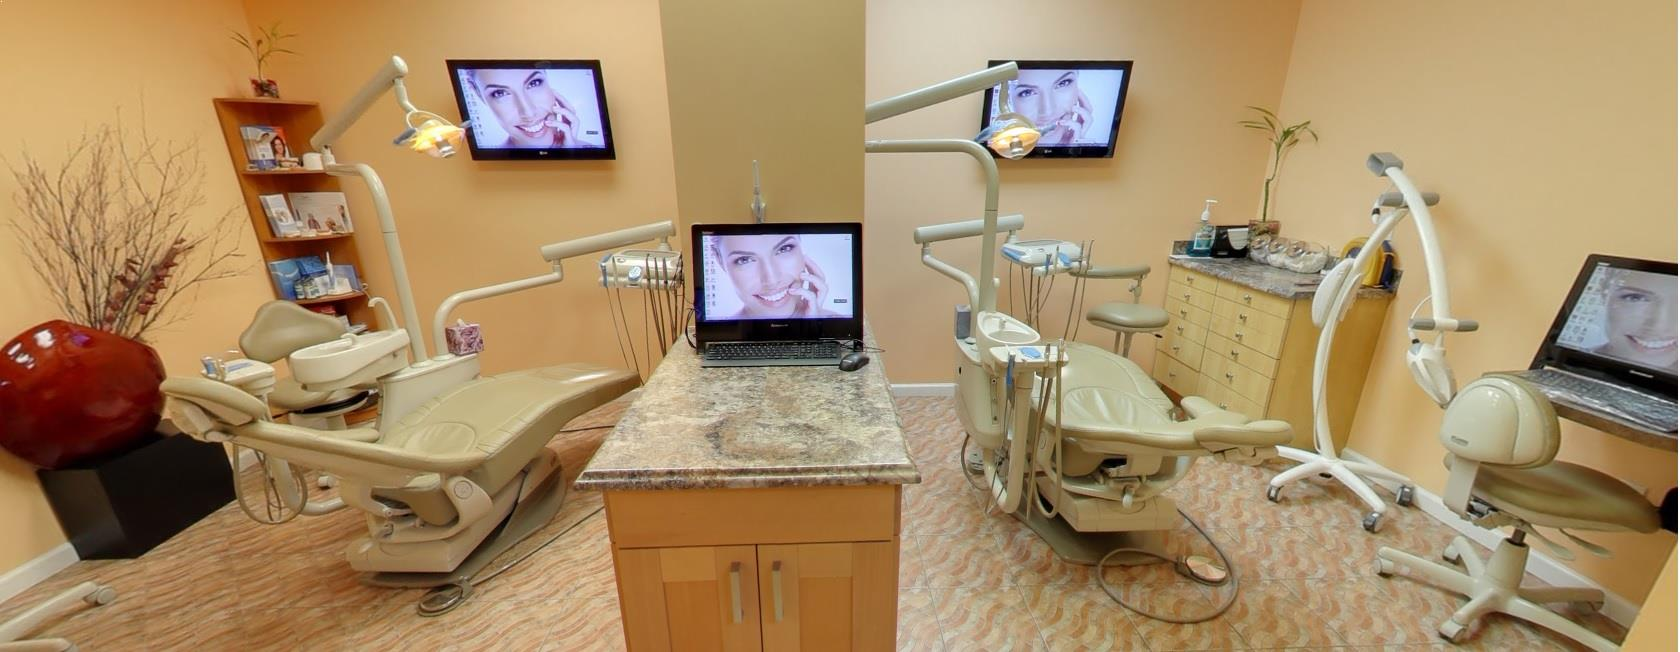 Dentist Office in Brooklyn